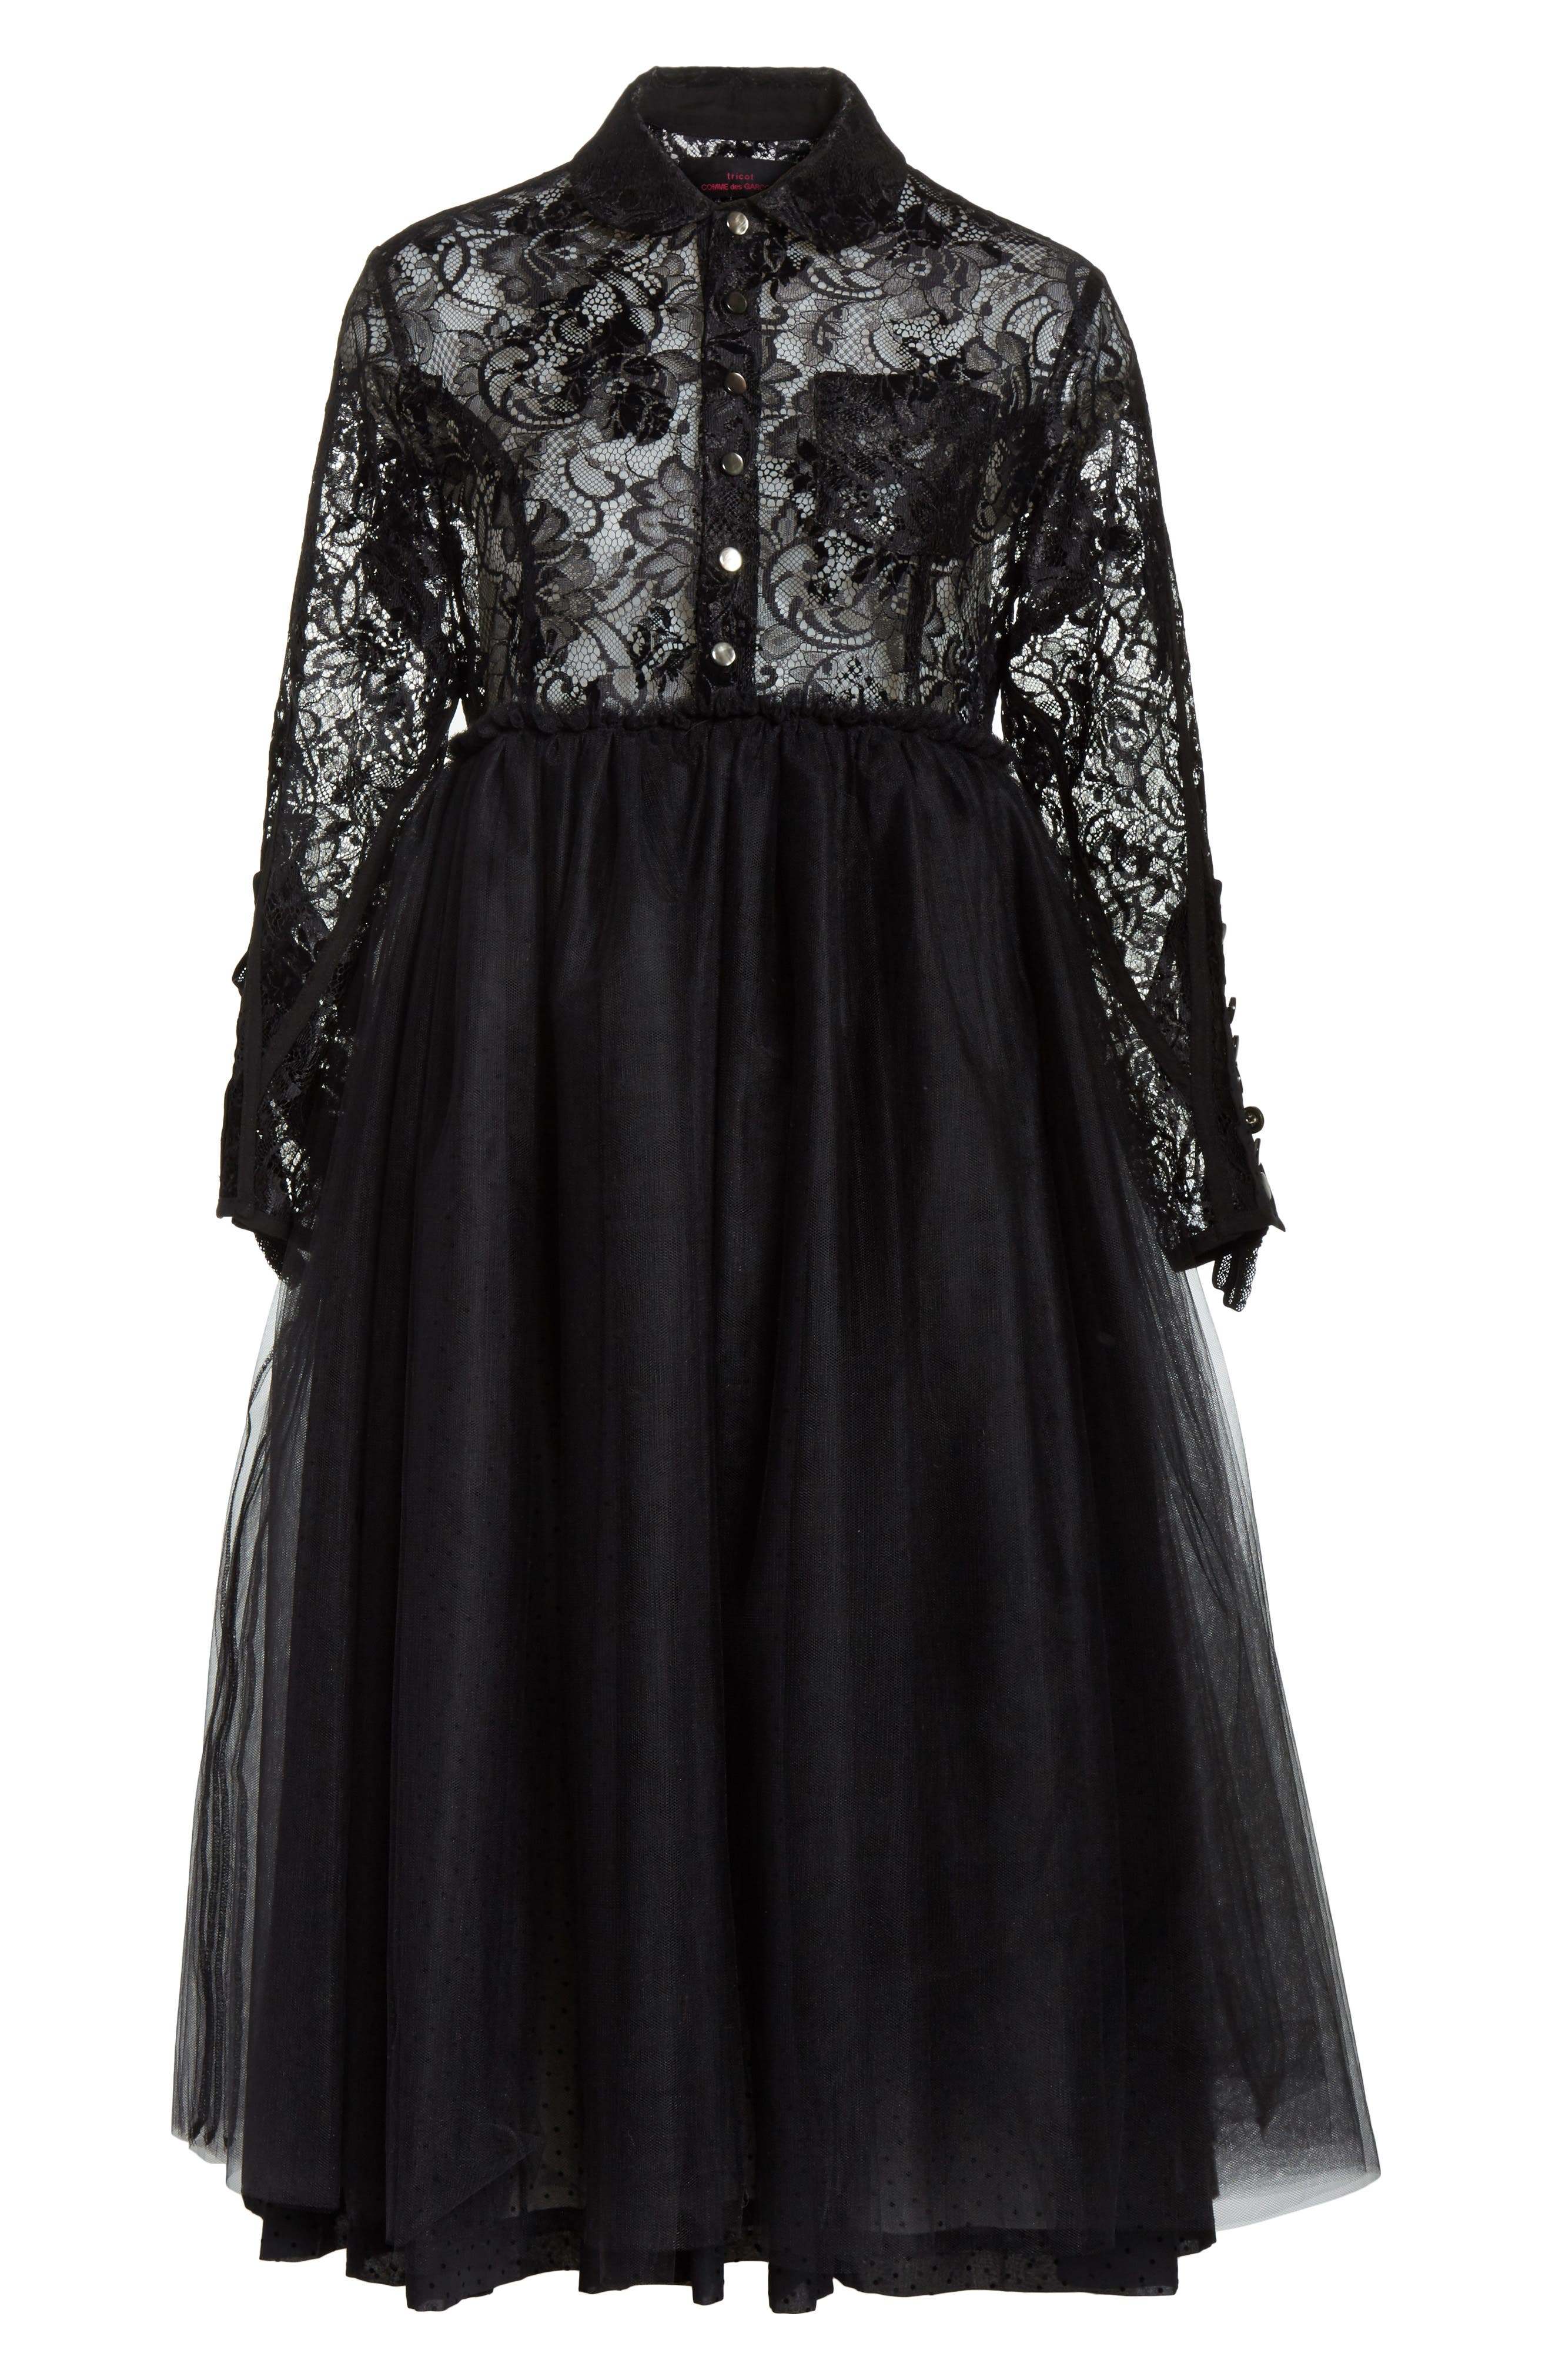 Lace Bodice Shirtdress with Tulle Skirt,                             Alternate thumbnail 6, color,                             011